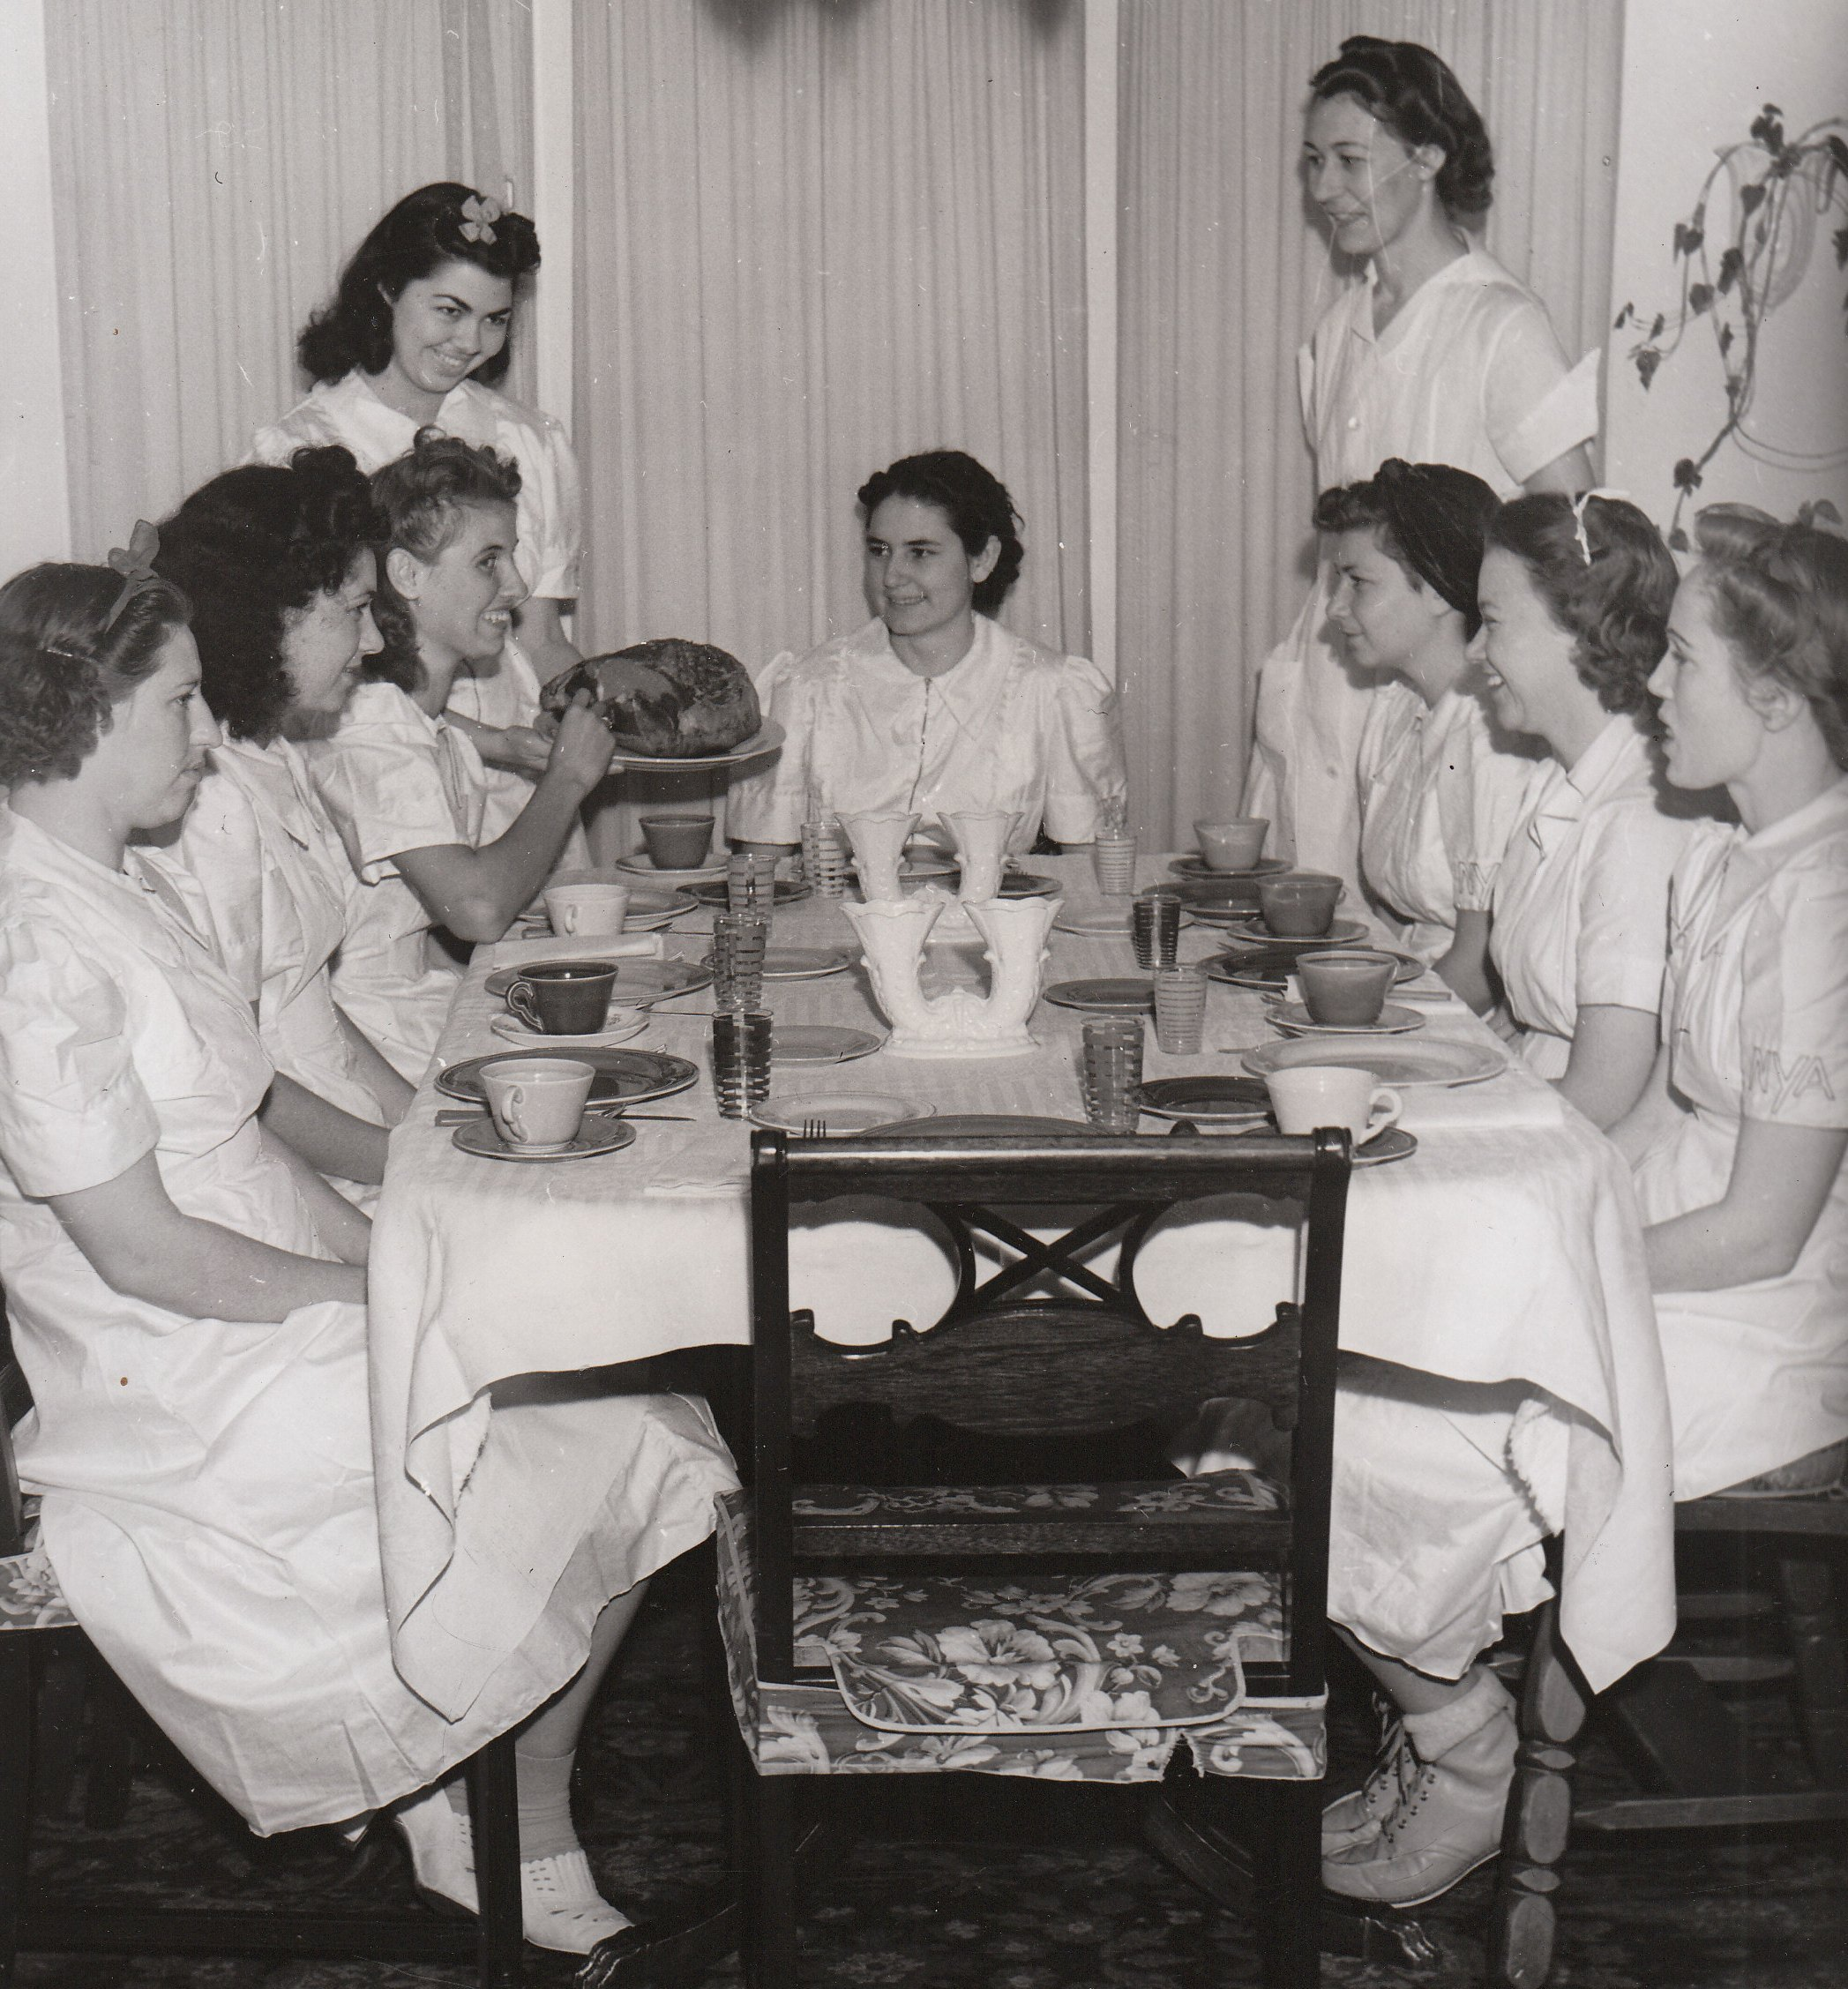 Young women training to be domestic workers in South Gate, California, get ready to enjoy the fruits of their labor. Photo courtesy of the National Archives (ca. 1935-1943).